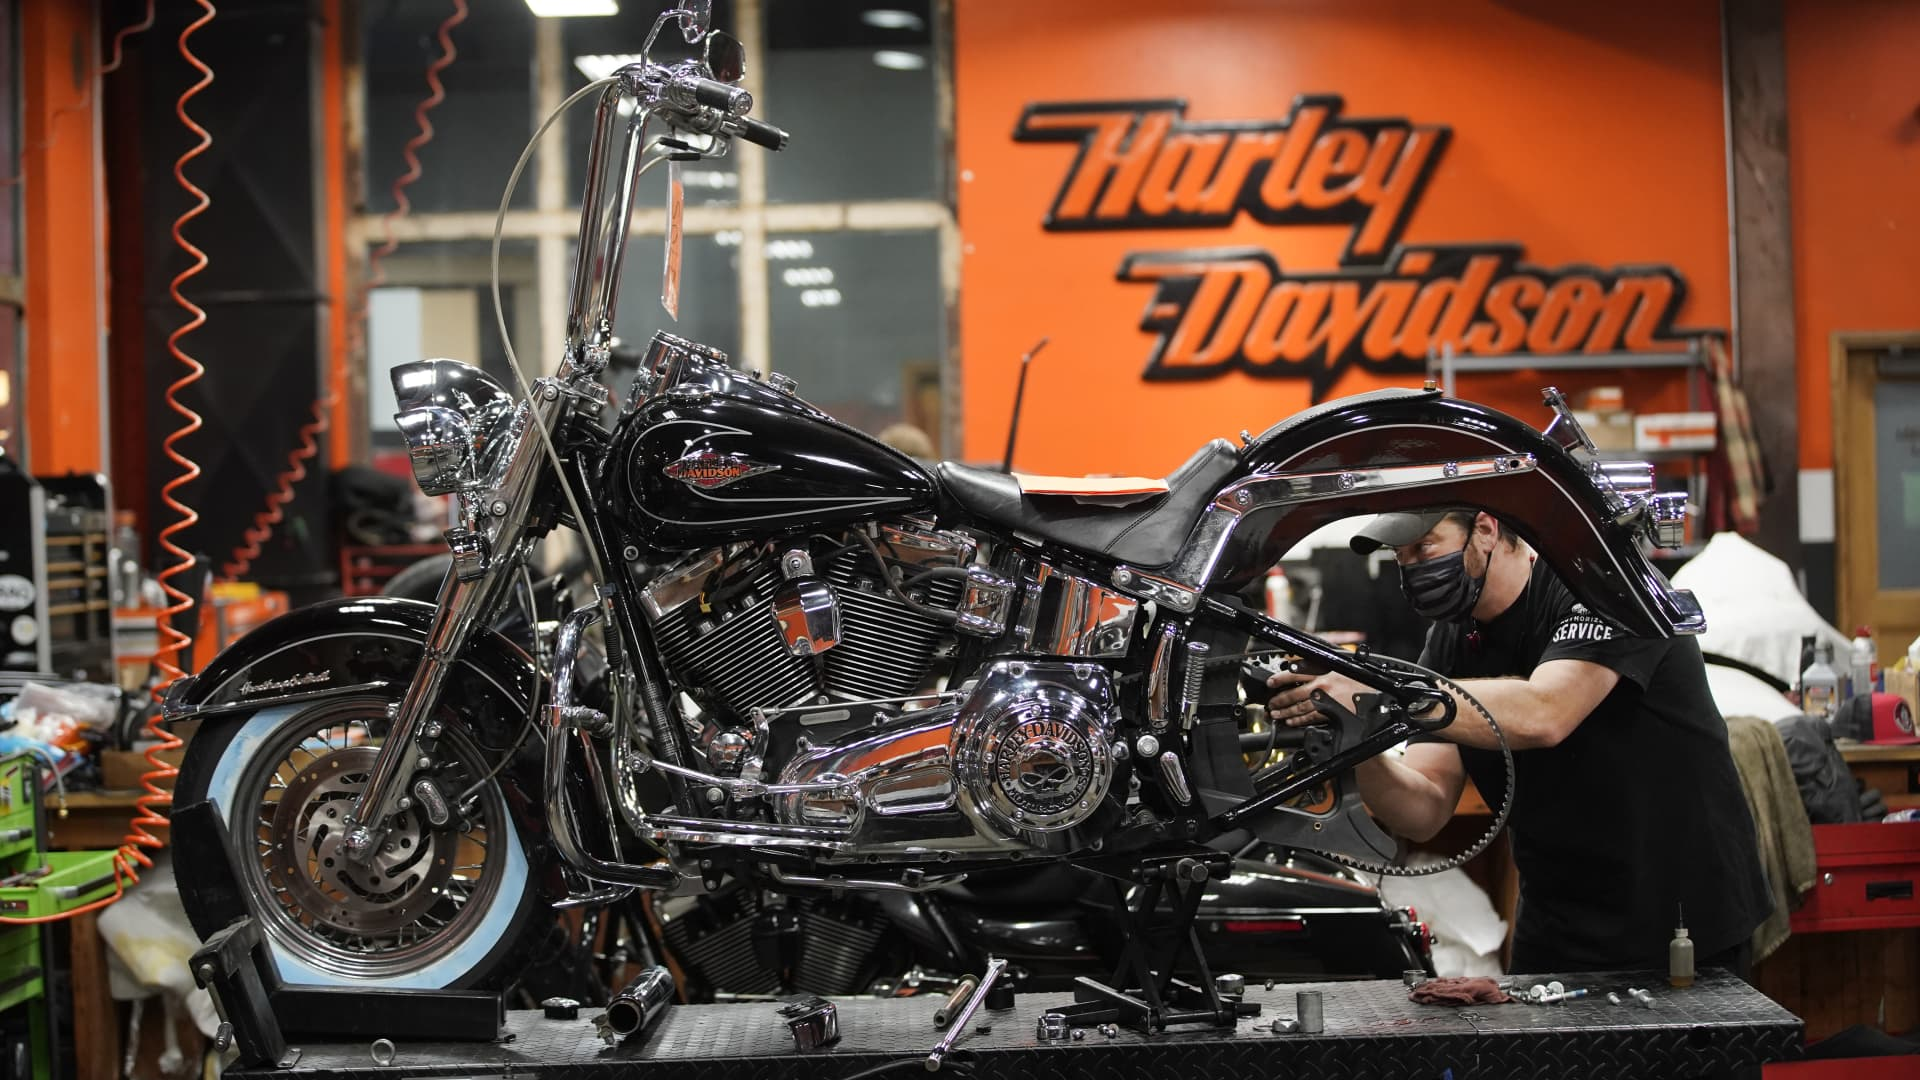 A mechanic works on a motorcycle at a Harley-Davidson showroom and repair shop in Lindon, Utah, U.S., on Monday, April 19, 2021.